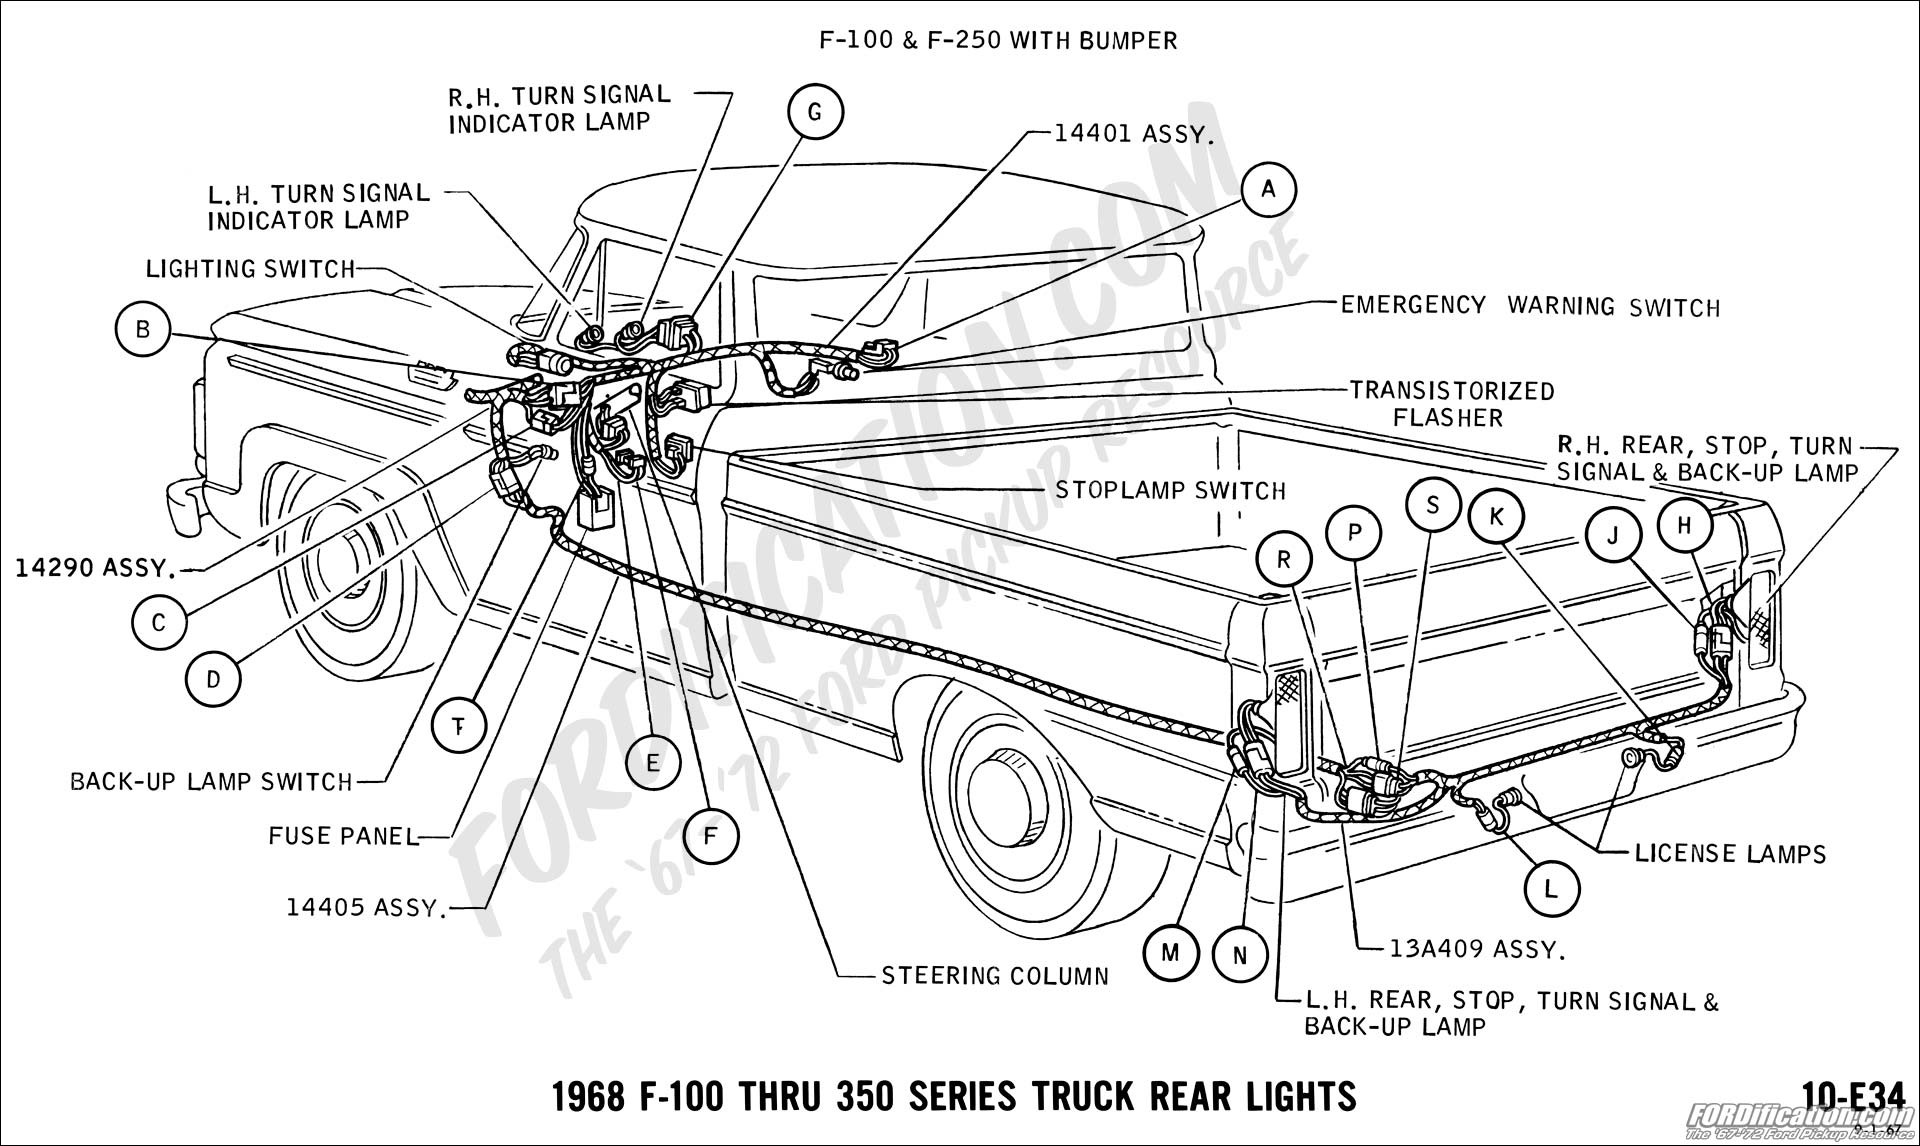 Ford Excursion Parts Diagram Lifted fords ford Under the Hood Pinterest Of Ford Excursion Parts Diagram